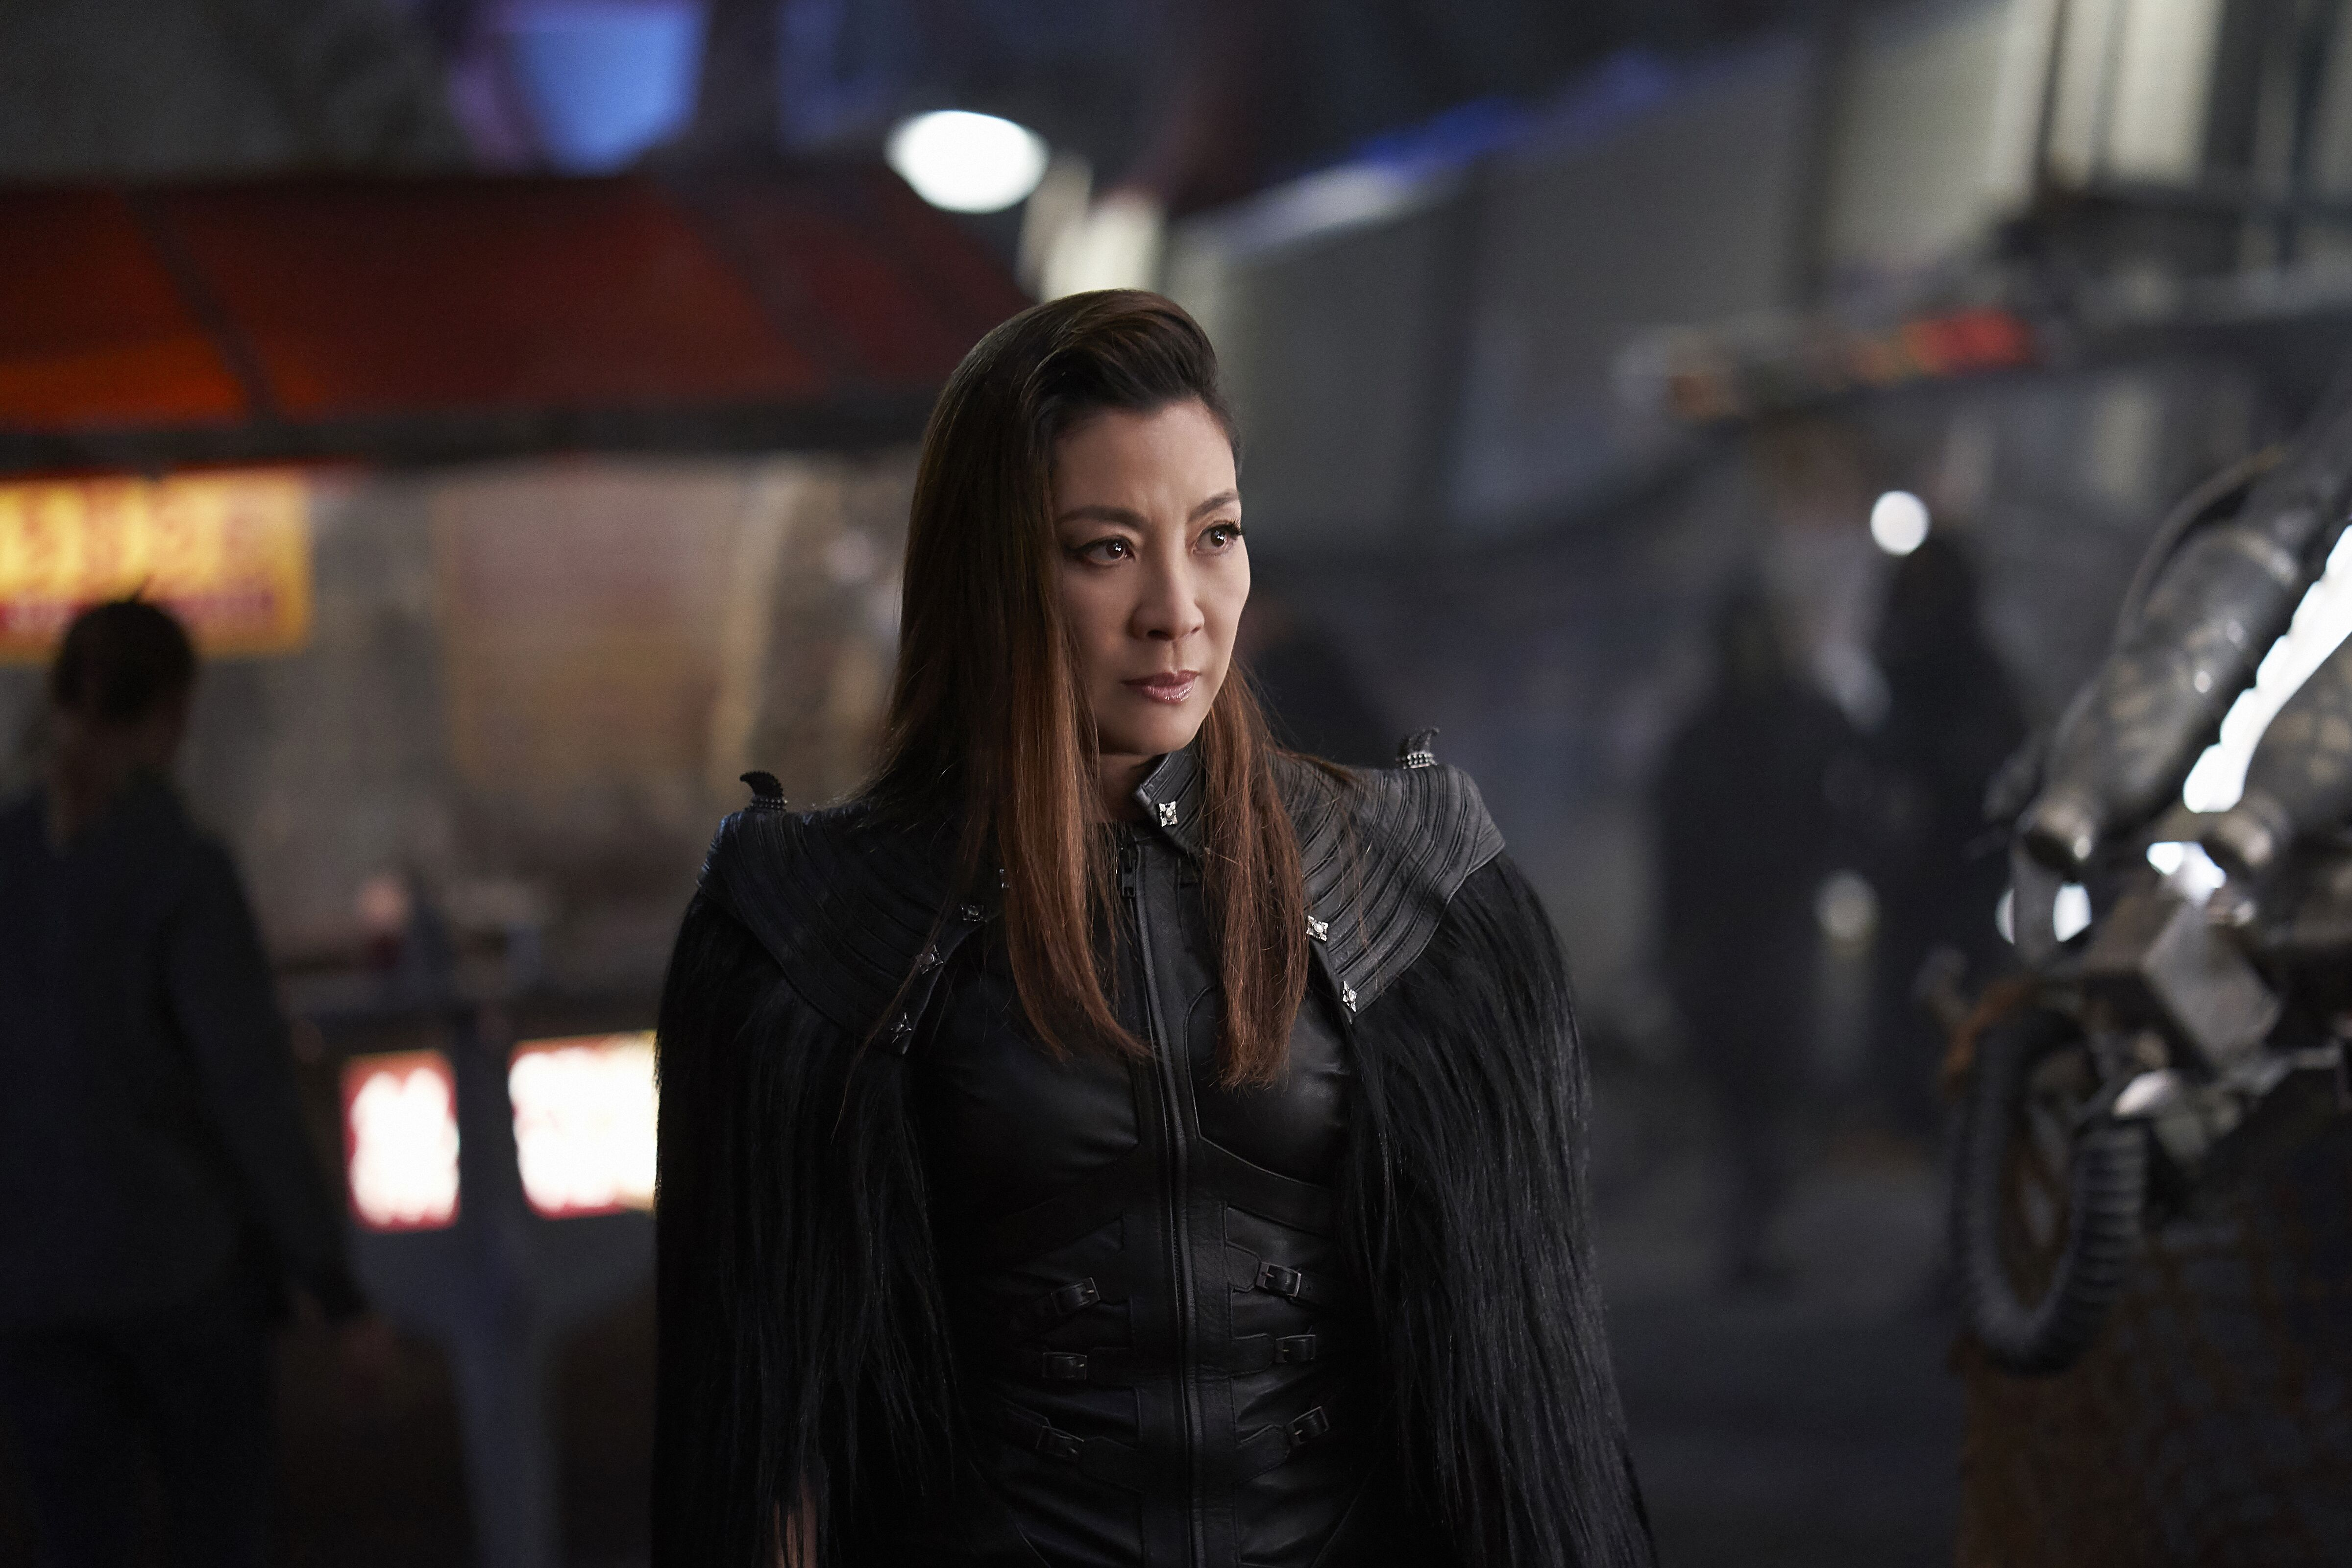 Star Trek Section 31 wouldn't work without Michelle Yeoh